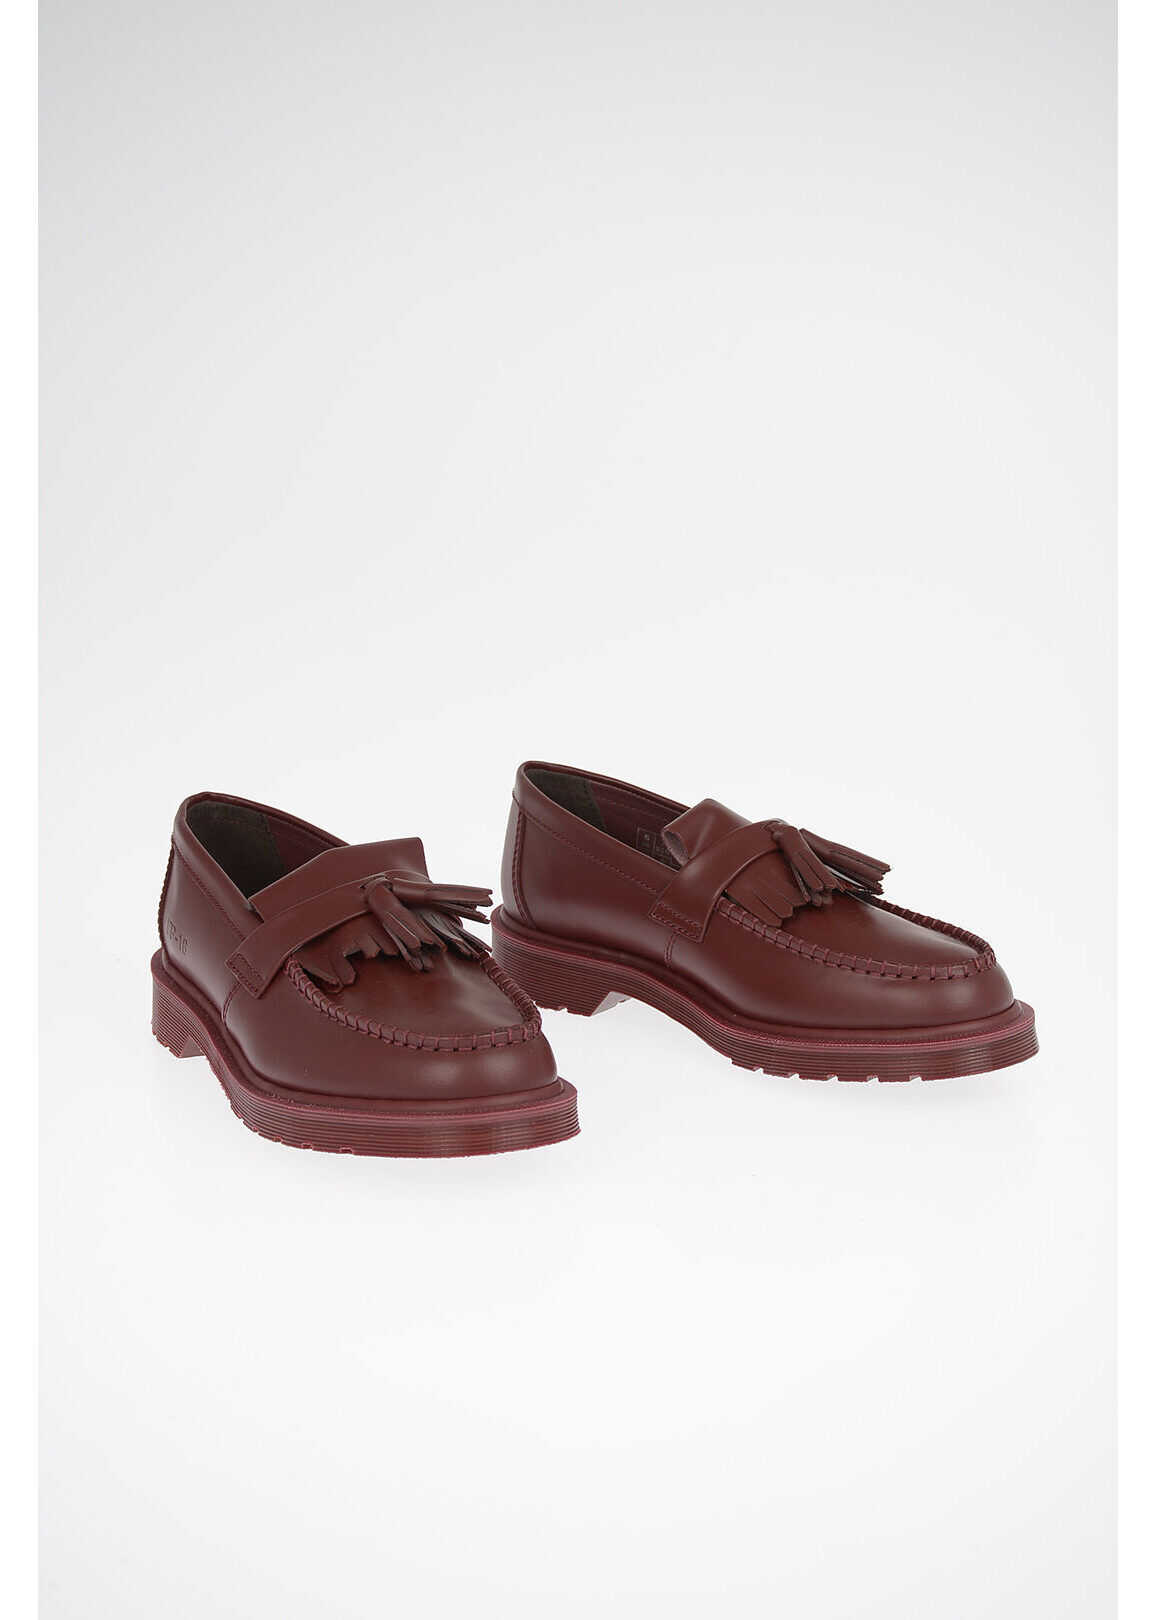 Dr. Martens GOSHA RUBCHINSKIY Leather ADRIAN Loafers RED